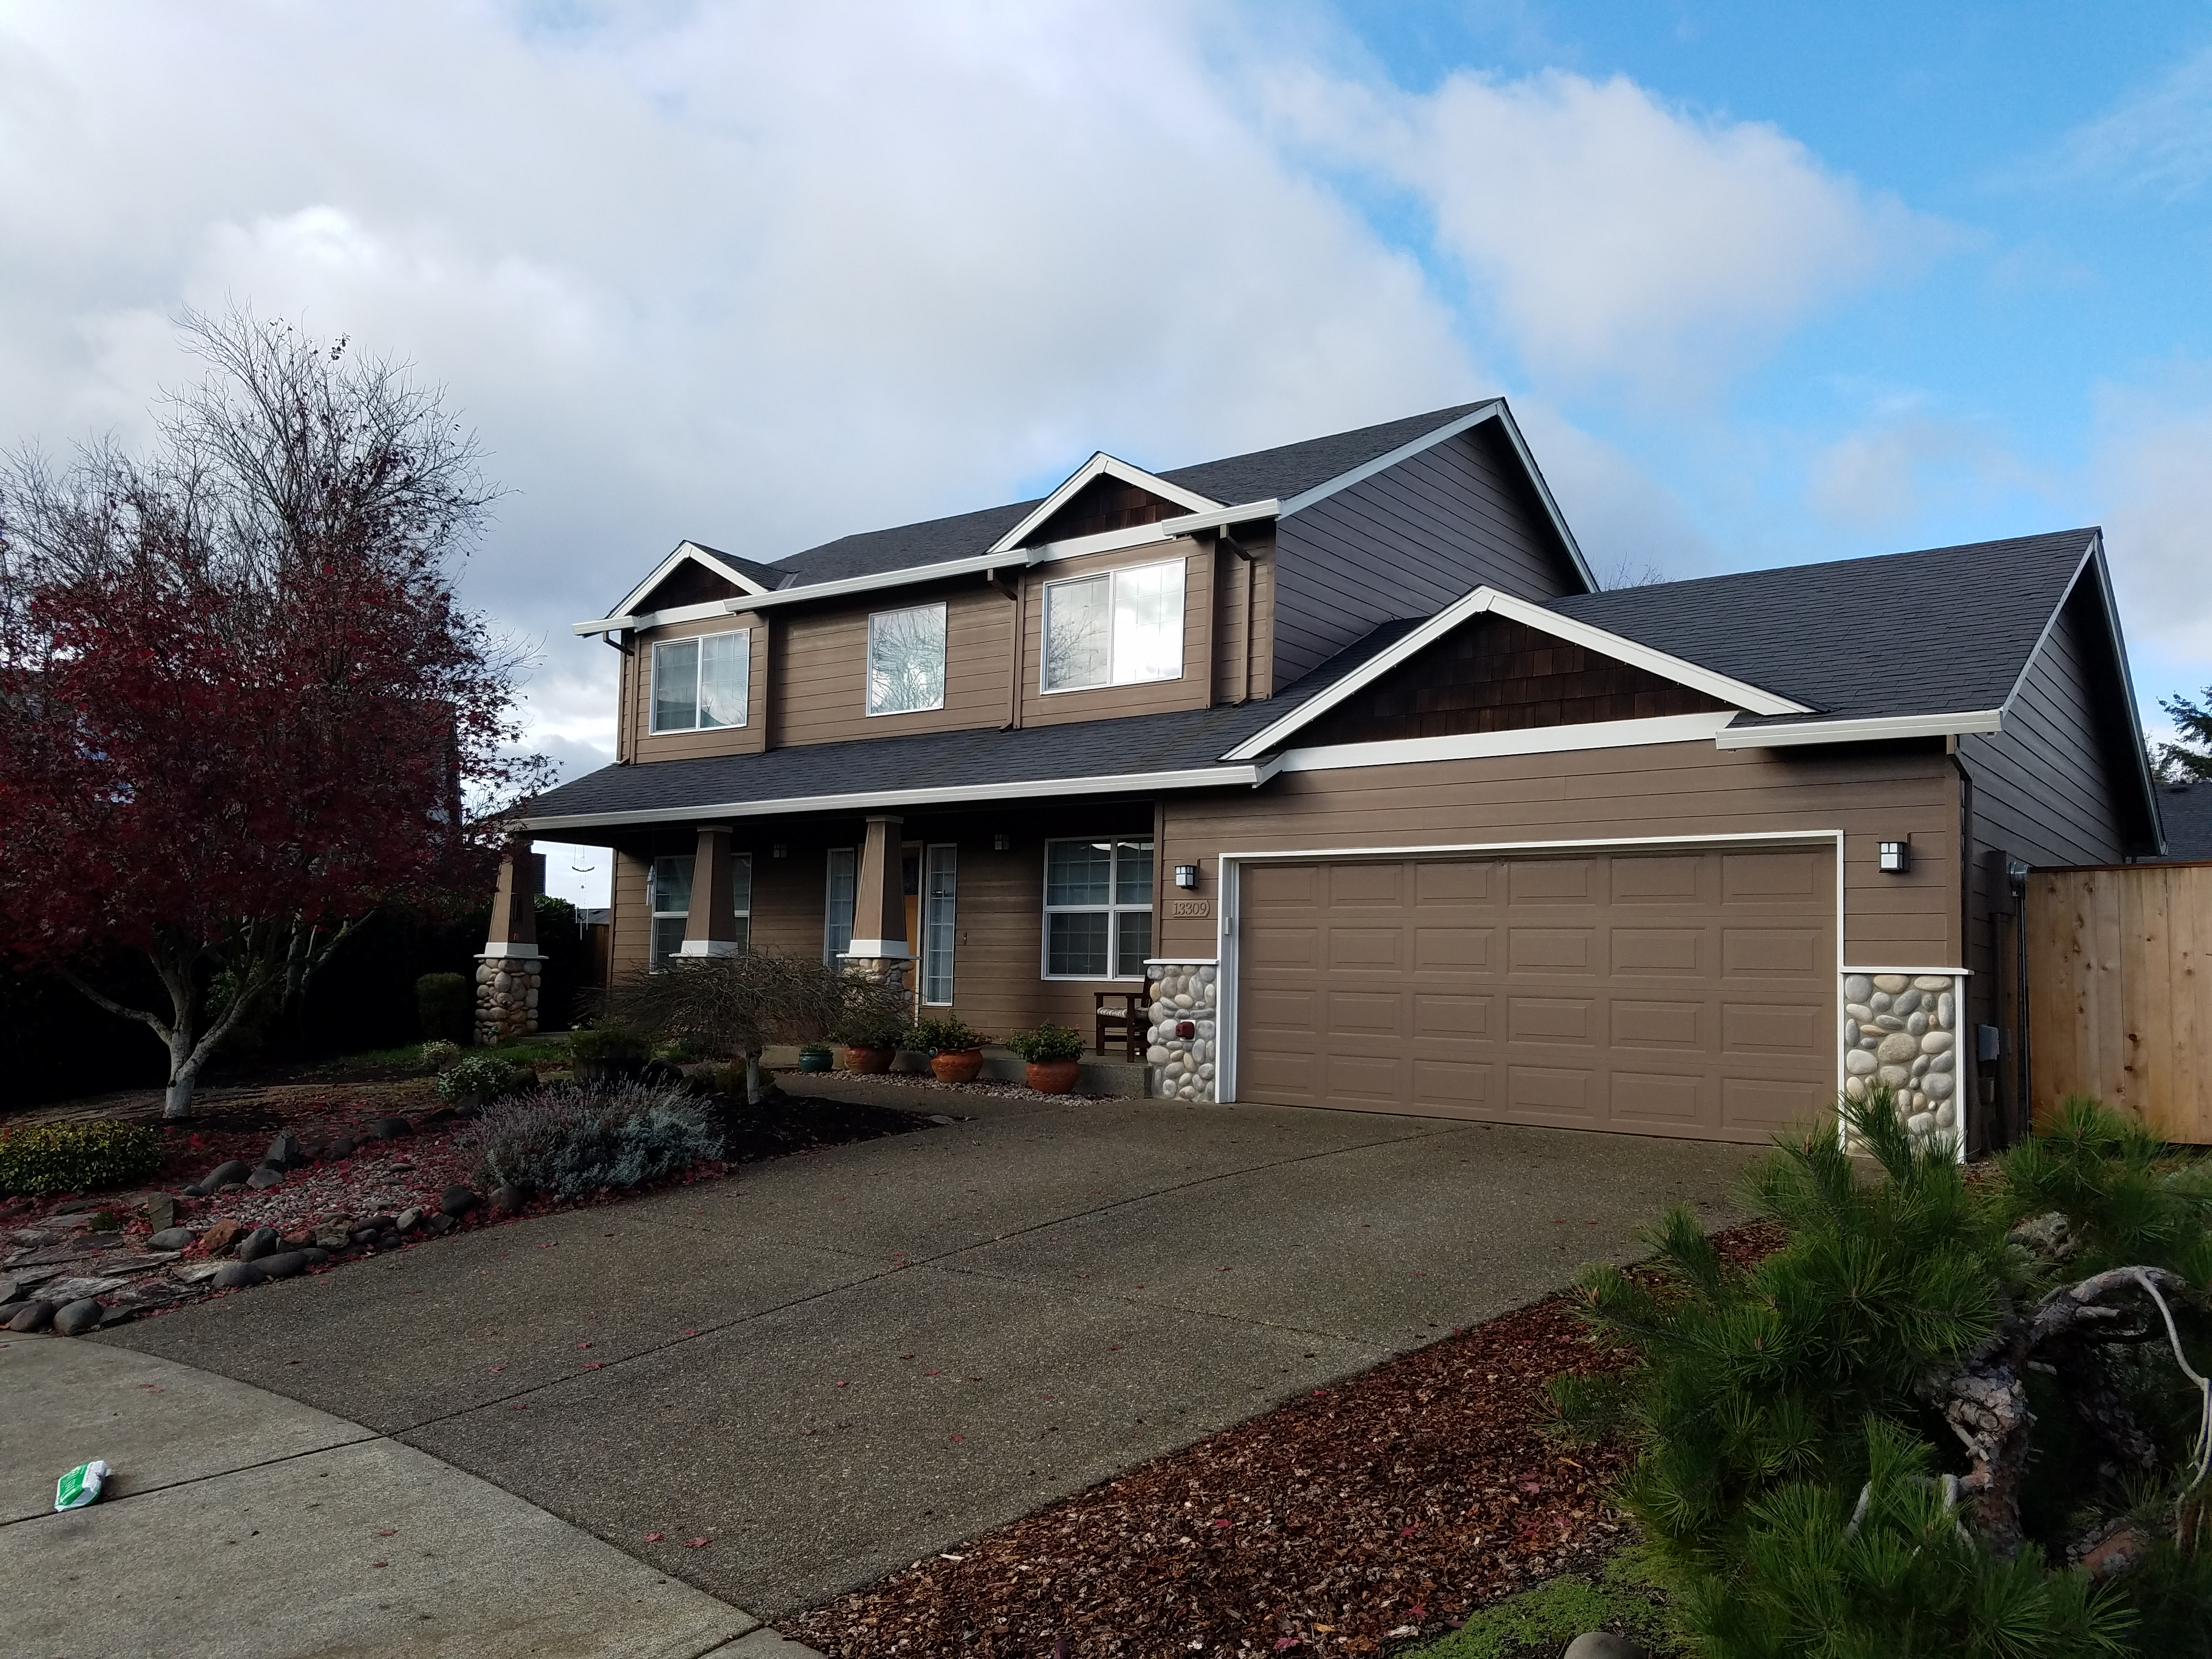 House Painters Oregon City Cascade Painting And